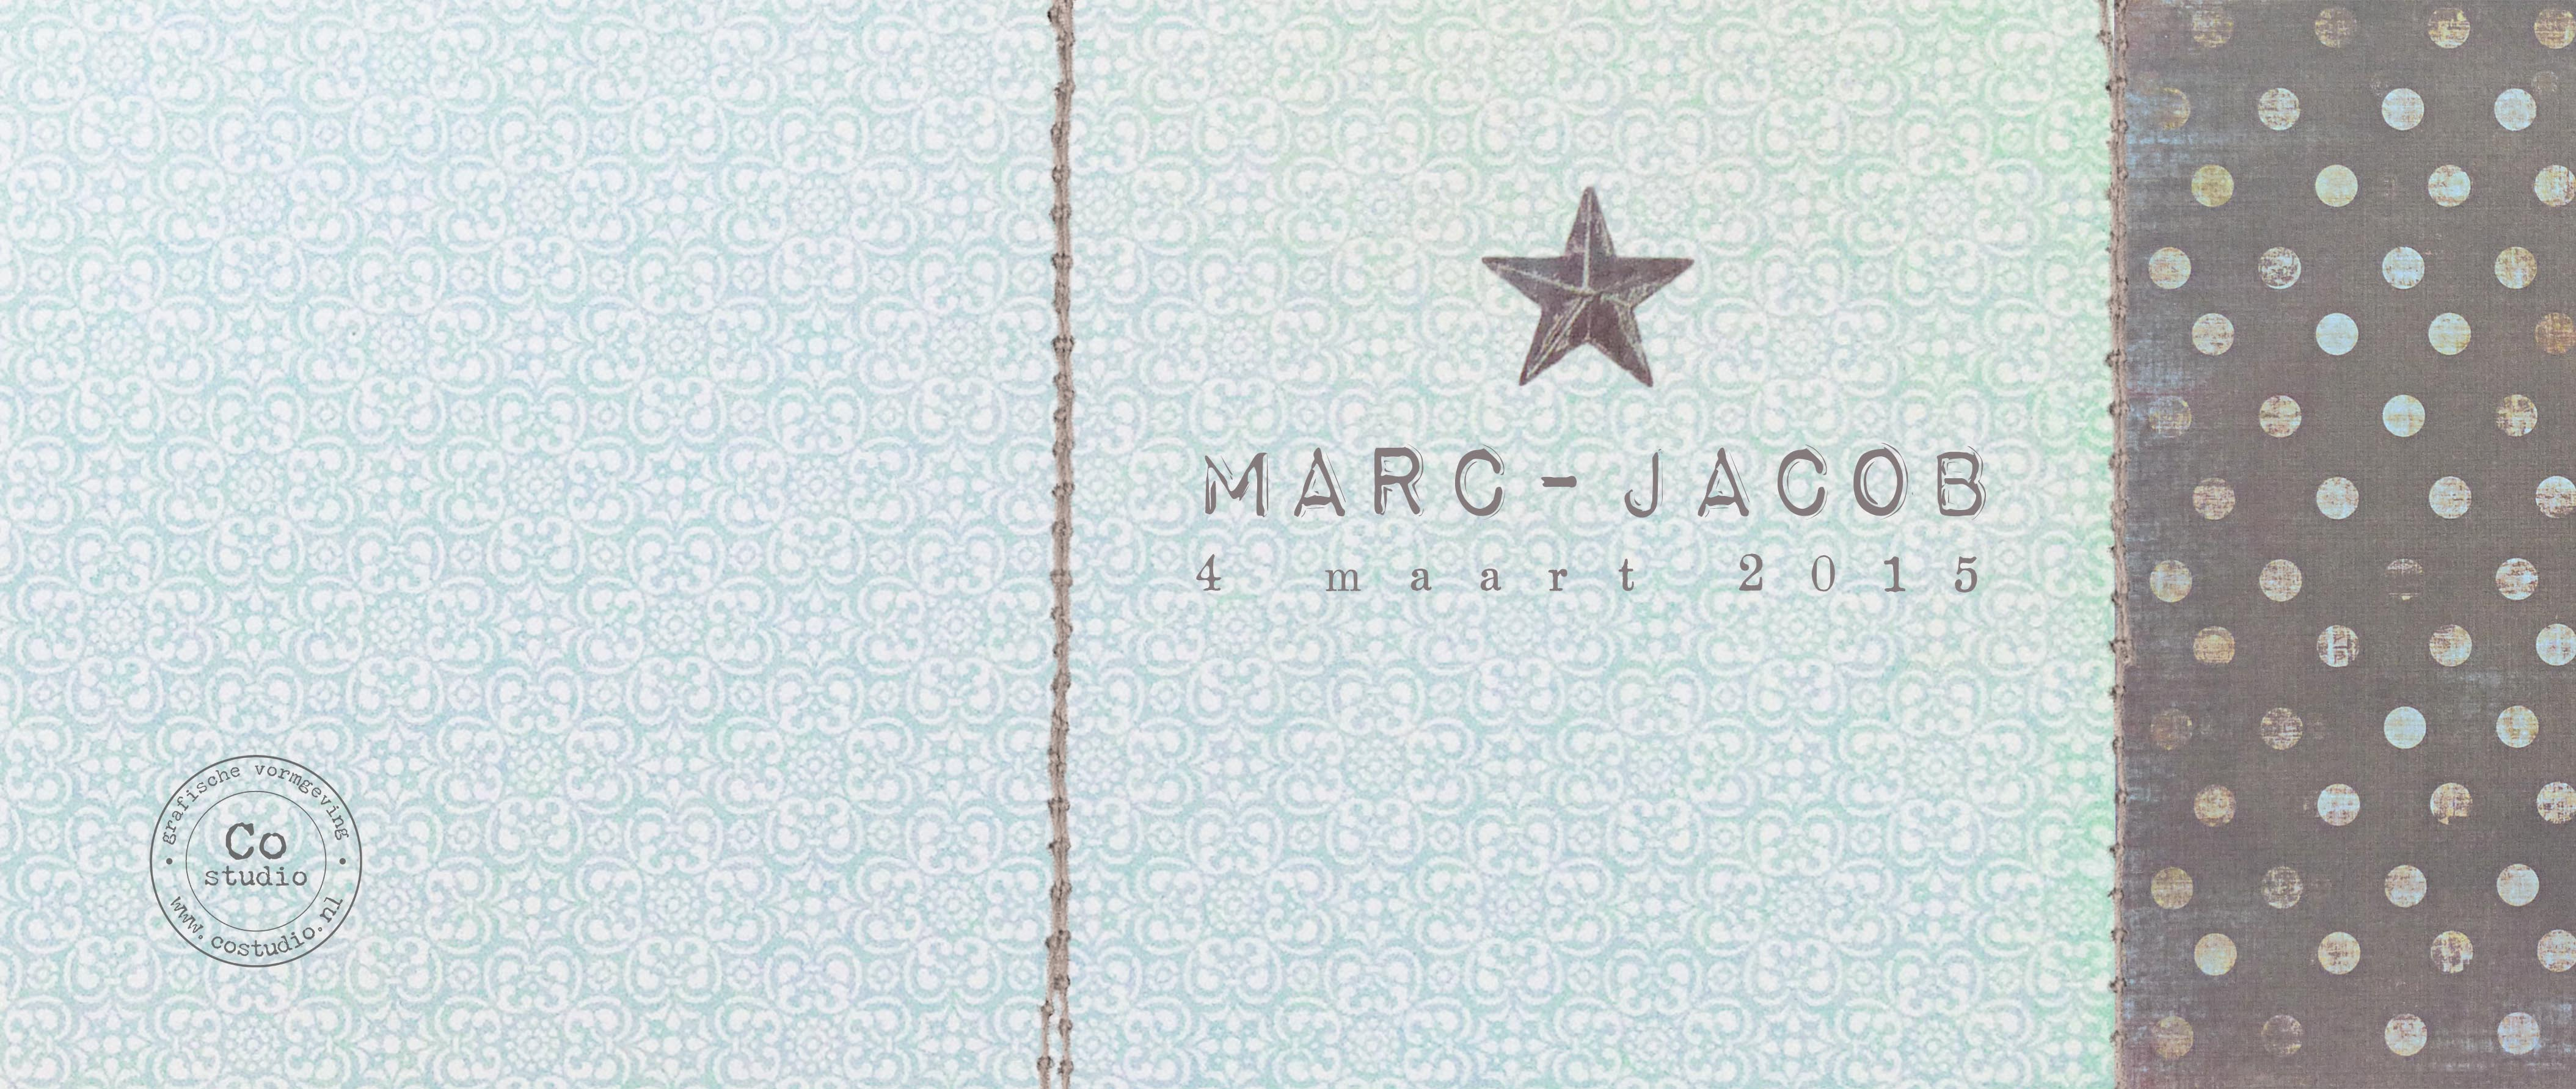 Marc-Jacob-met extra flap